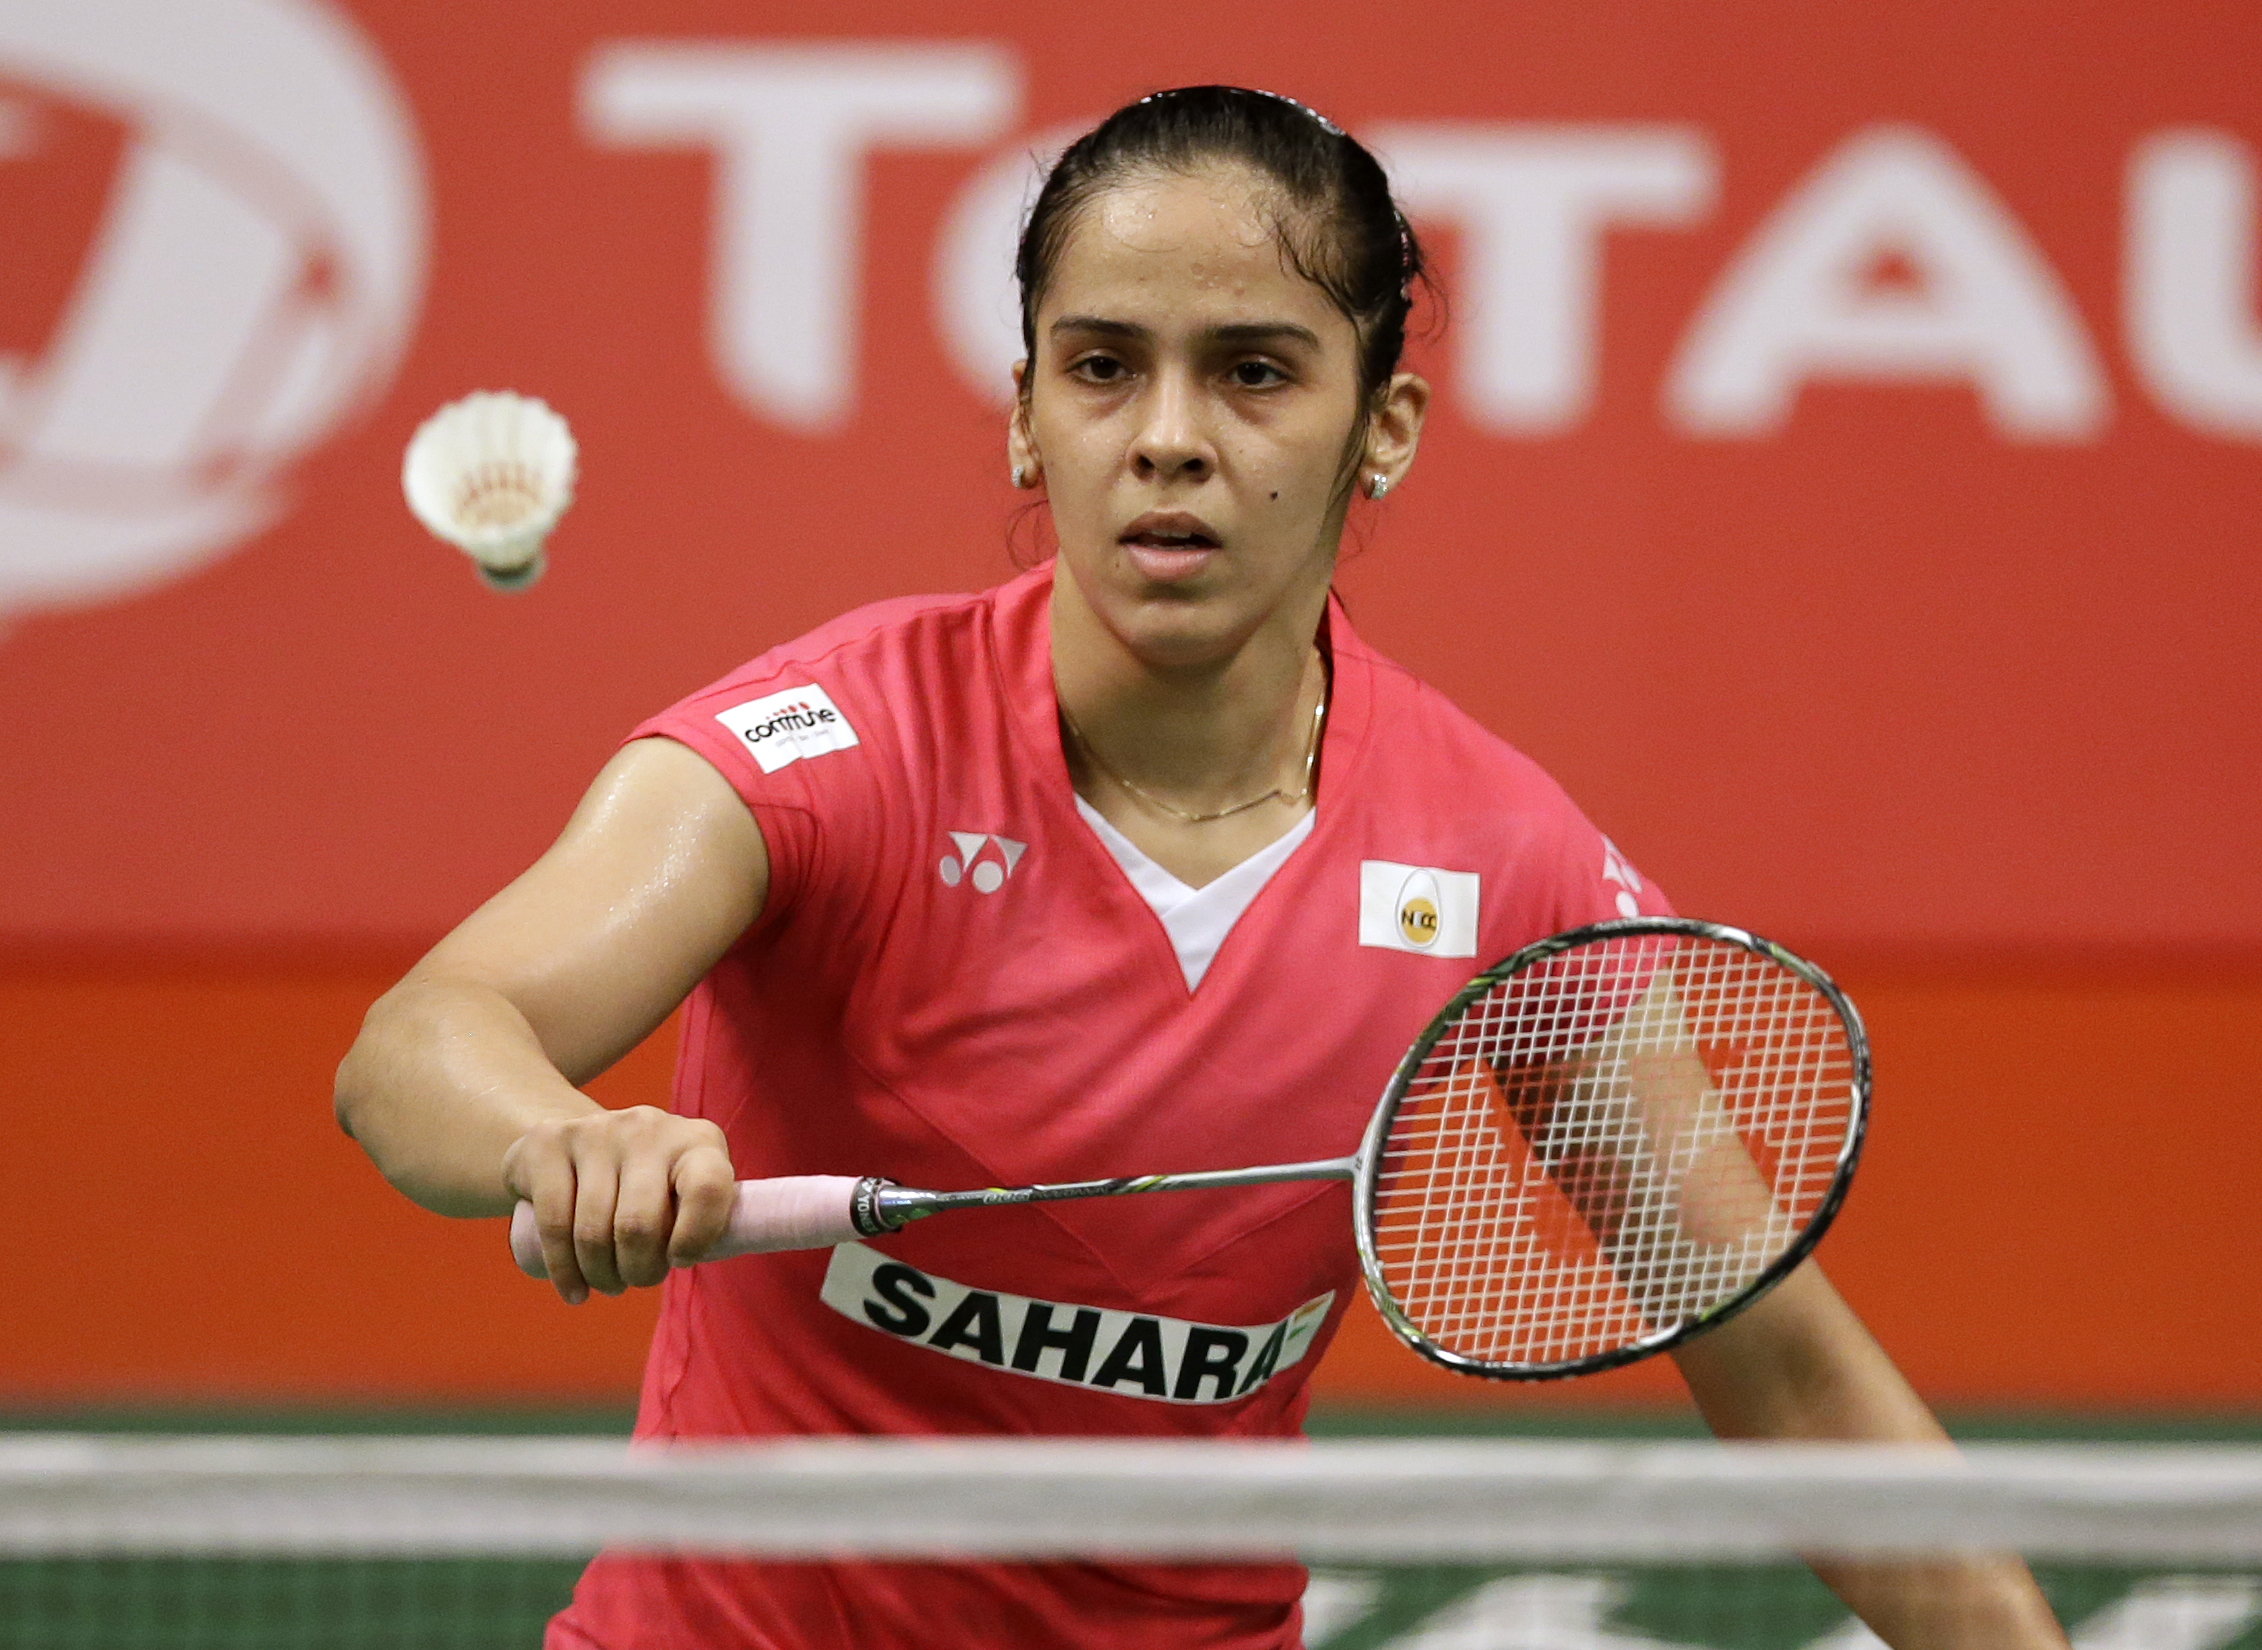 Badminton boom in India sparked by Saina Nehwal s success